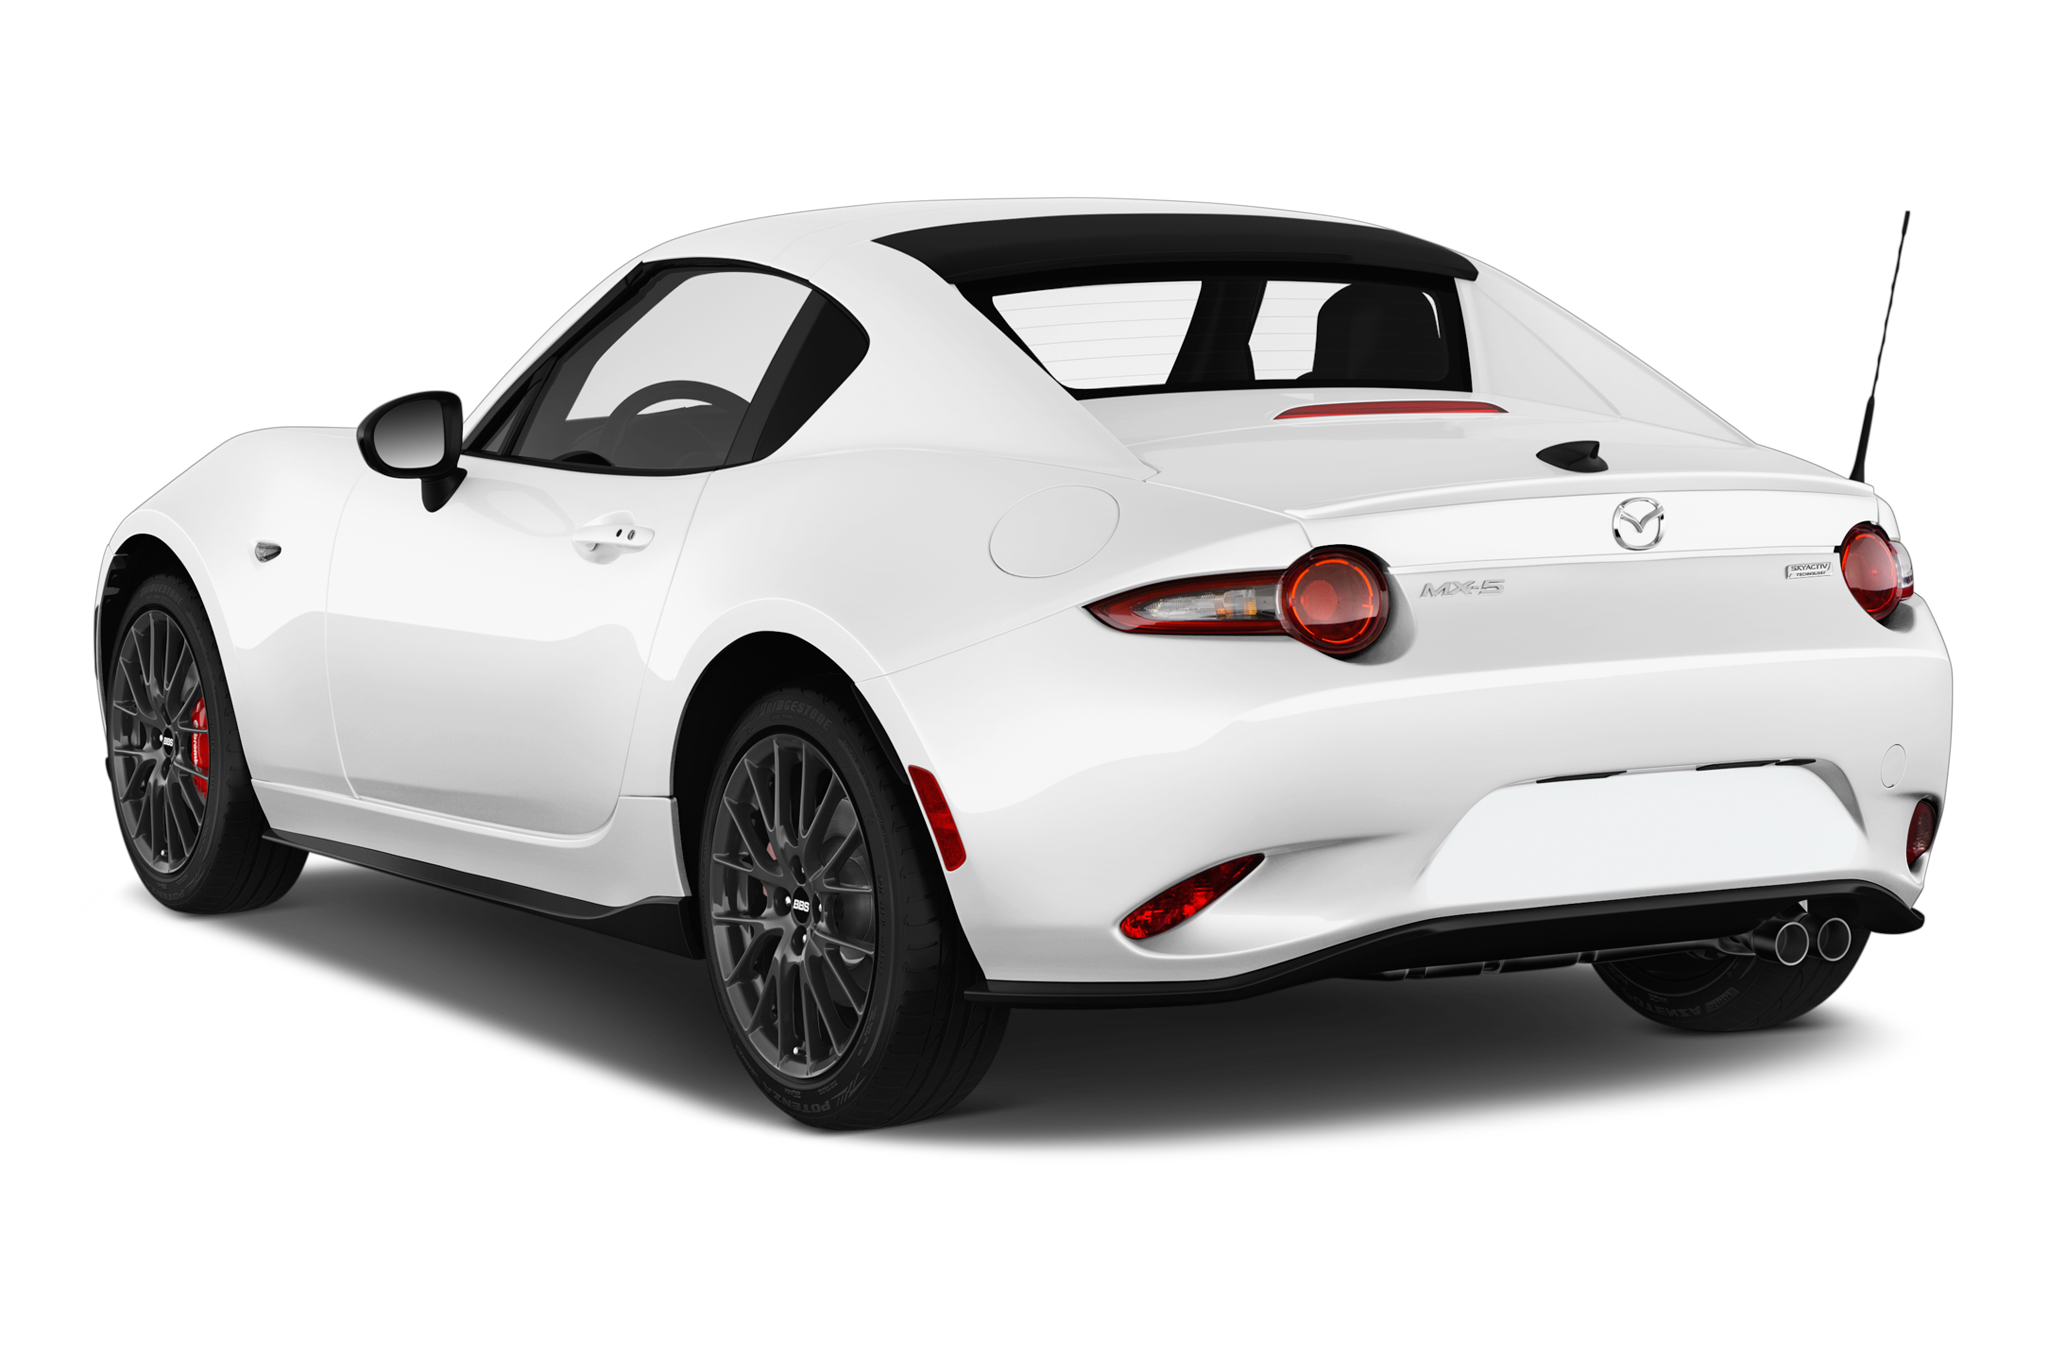 Just Listed: One Owner, Low-Mileage 1991 Mazda Miata SE with Turbo ...